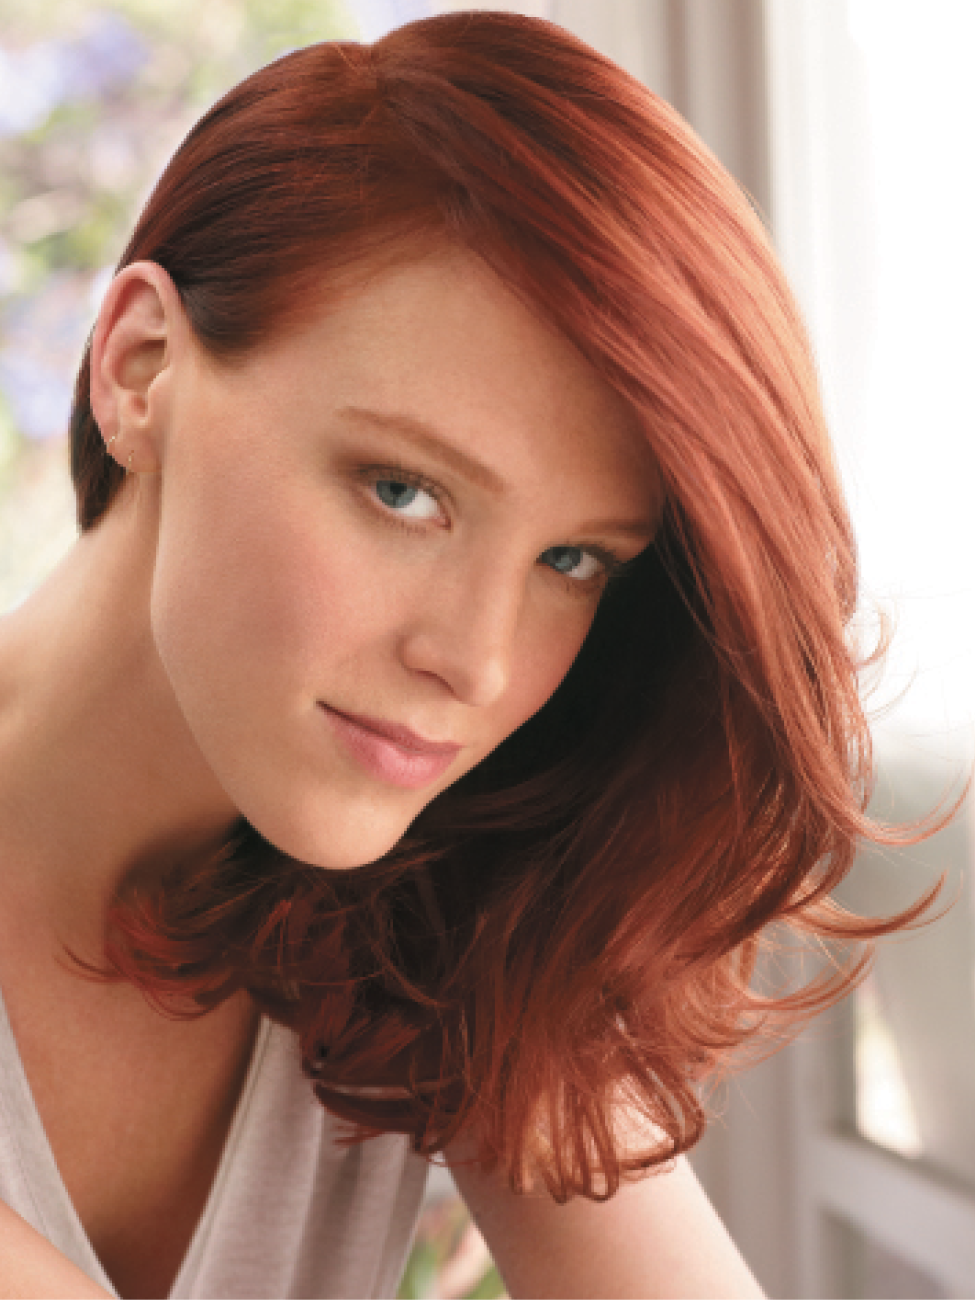 To prep this vibrant red hair, Markham and Wilson used SuperRich Shampoo and Condition before applying a blend of PlushLocks Leave-In Smooth and RadicallySmooth Anti-Frizz Serum. After blow-drying locks, they added PowderFix Texturizing Powder to enhance body and texture and form smooth, shiny waves.